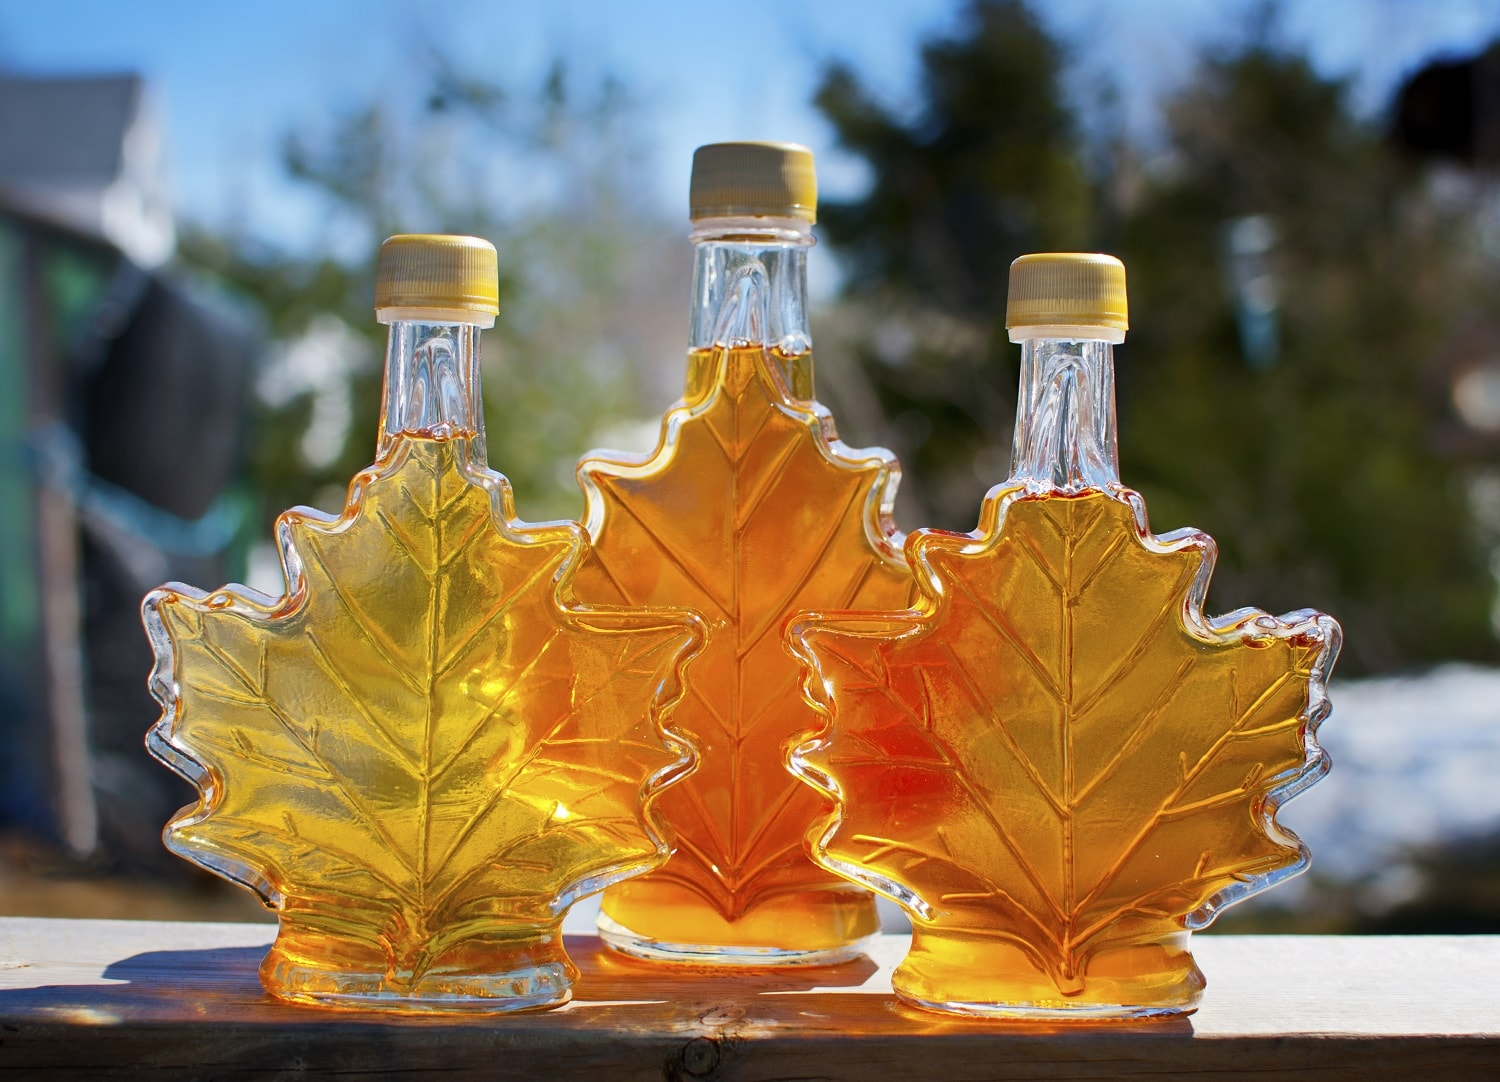 Maple Syrup in Vermont is Some of the Best in the World